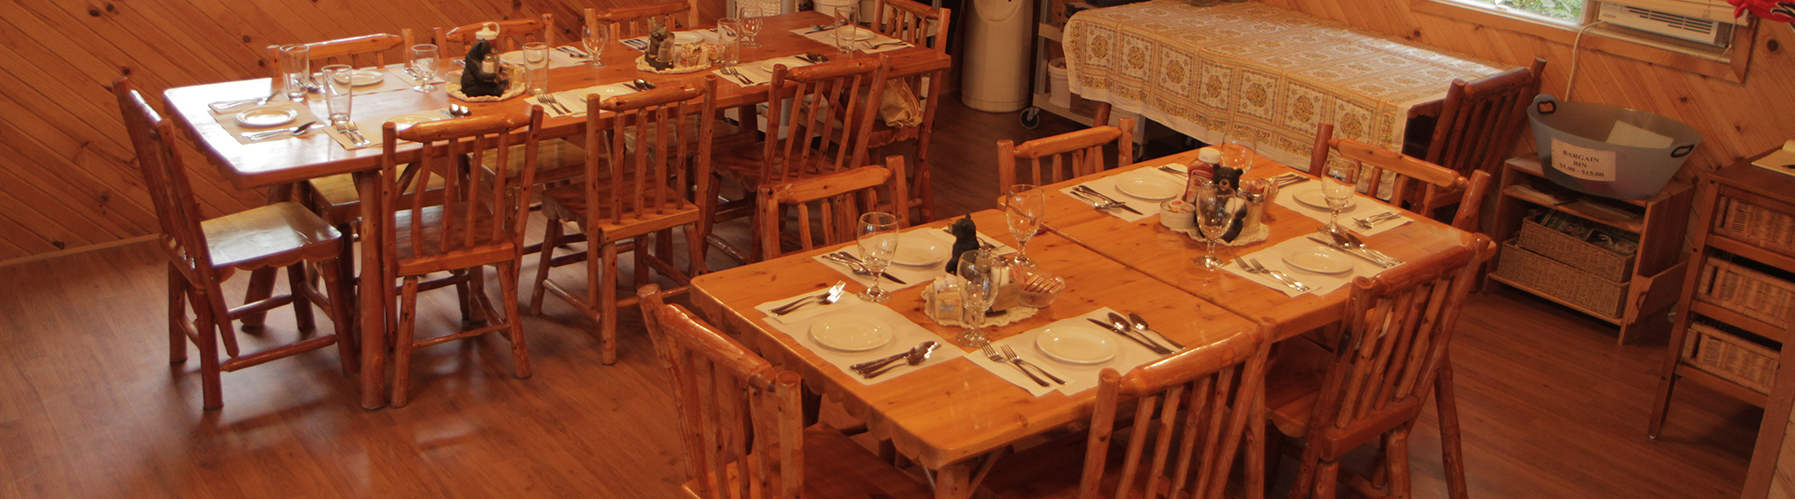 Agich's Kaby Kabins Dining